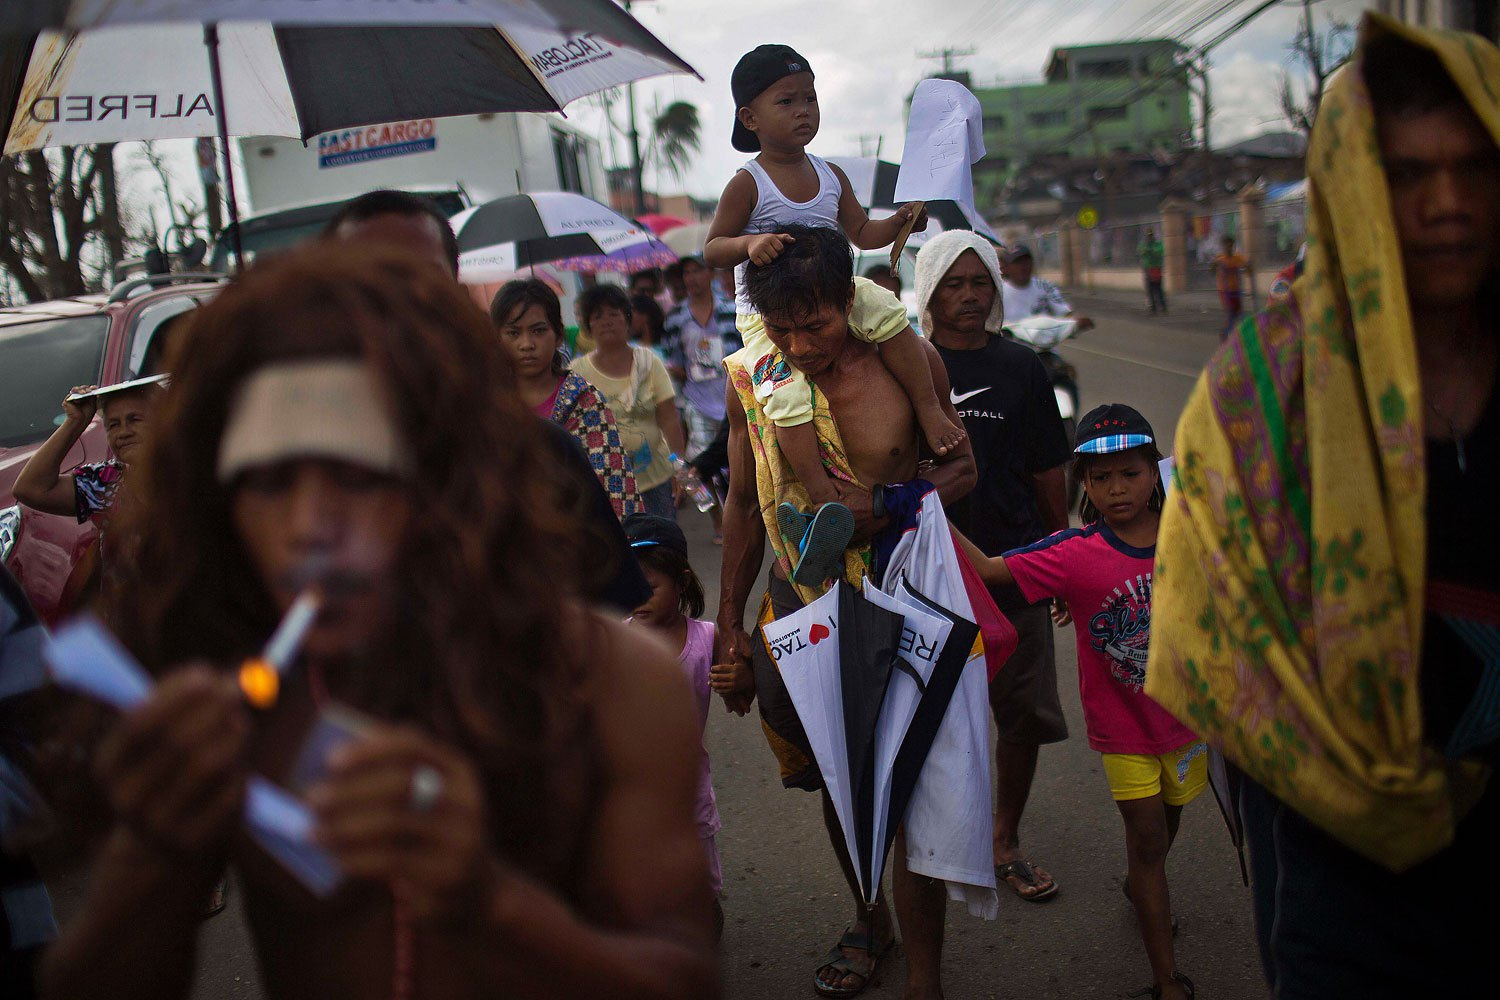 People march in the rain Tacloban, Philippines during a procession to call for courage and resilience among their Typhoon Haiyan survivors on November 19, 2013.